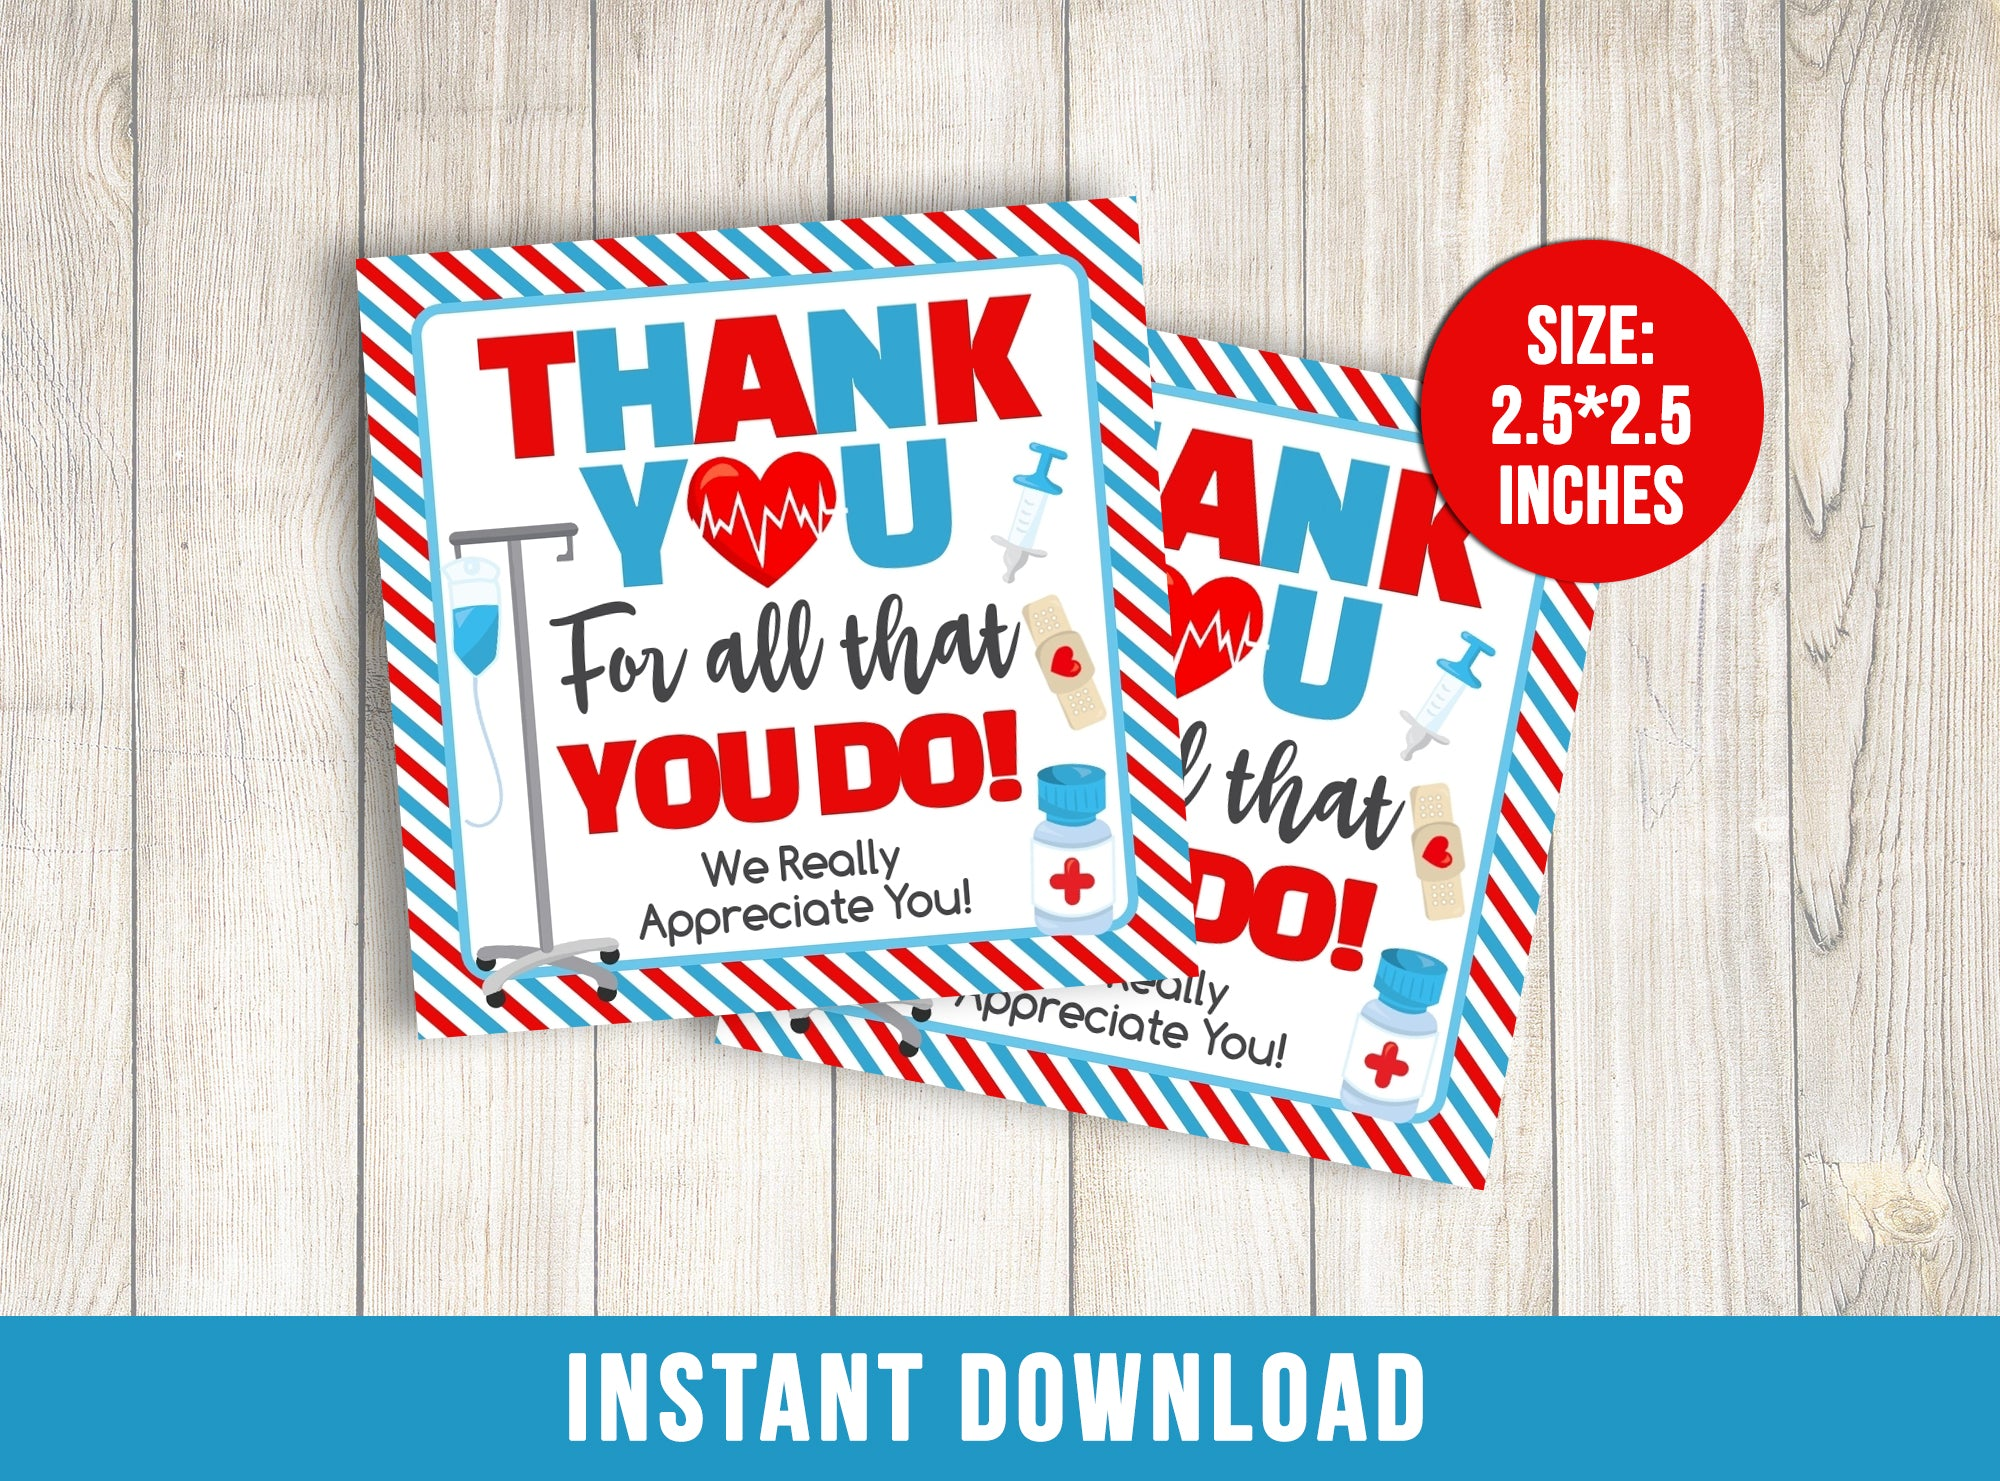 Nurse Appreciation Day Card, Healthcare Heroes Square Gift Tags, Doctor, Hospital, Medical INSTANT DOWNLOAD - TitaTipsPrintables